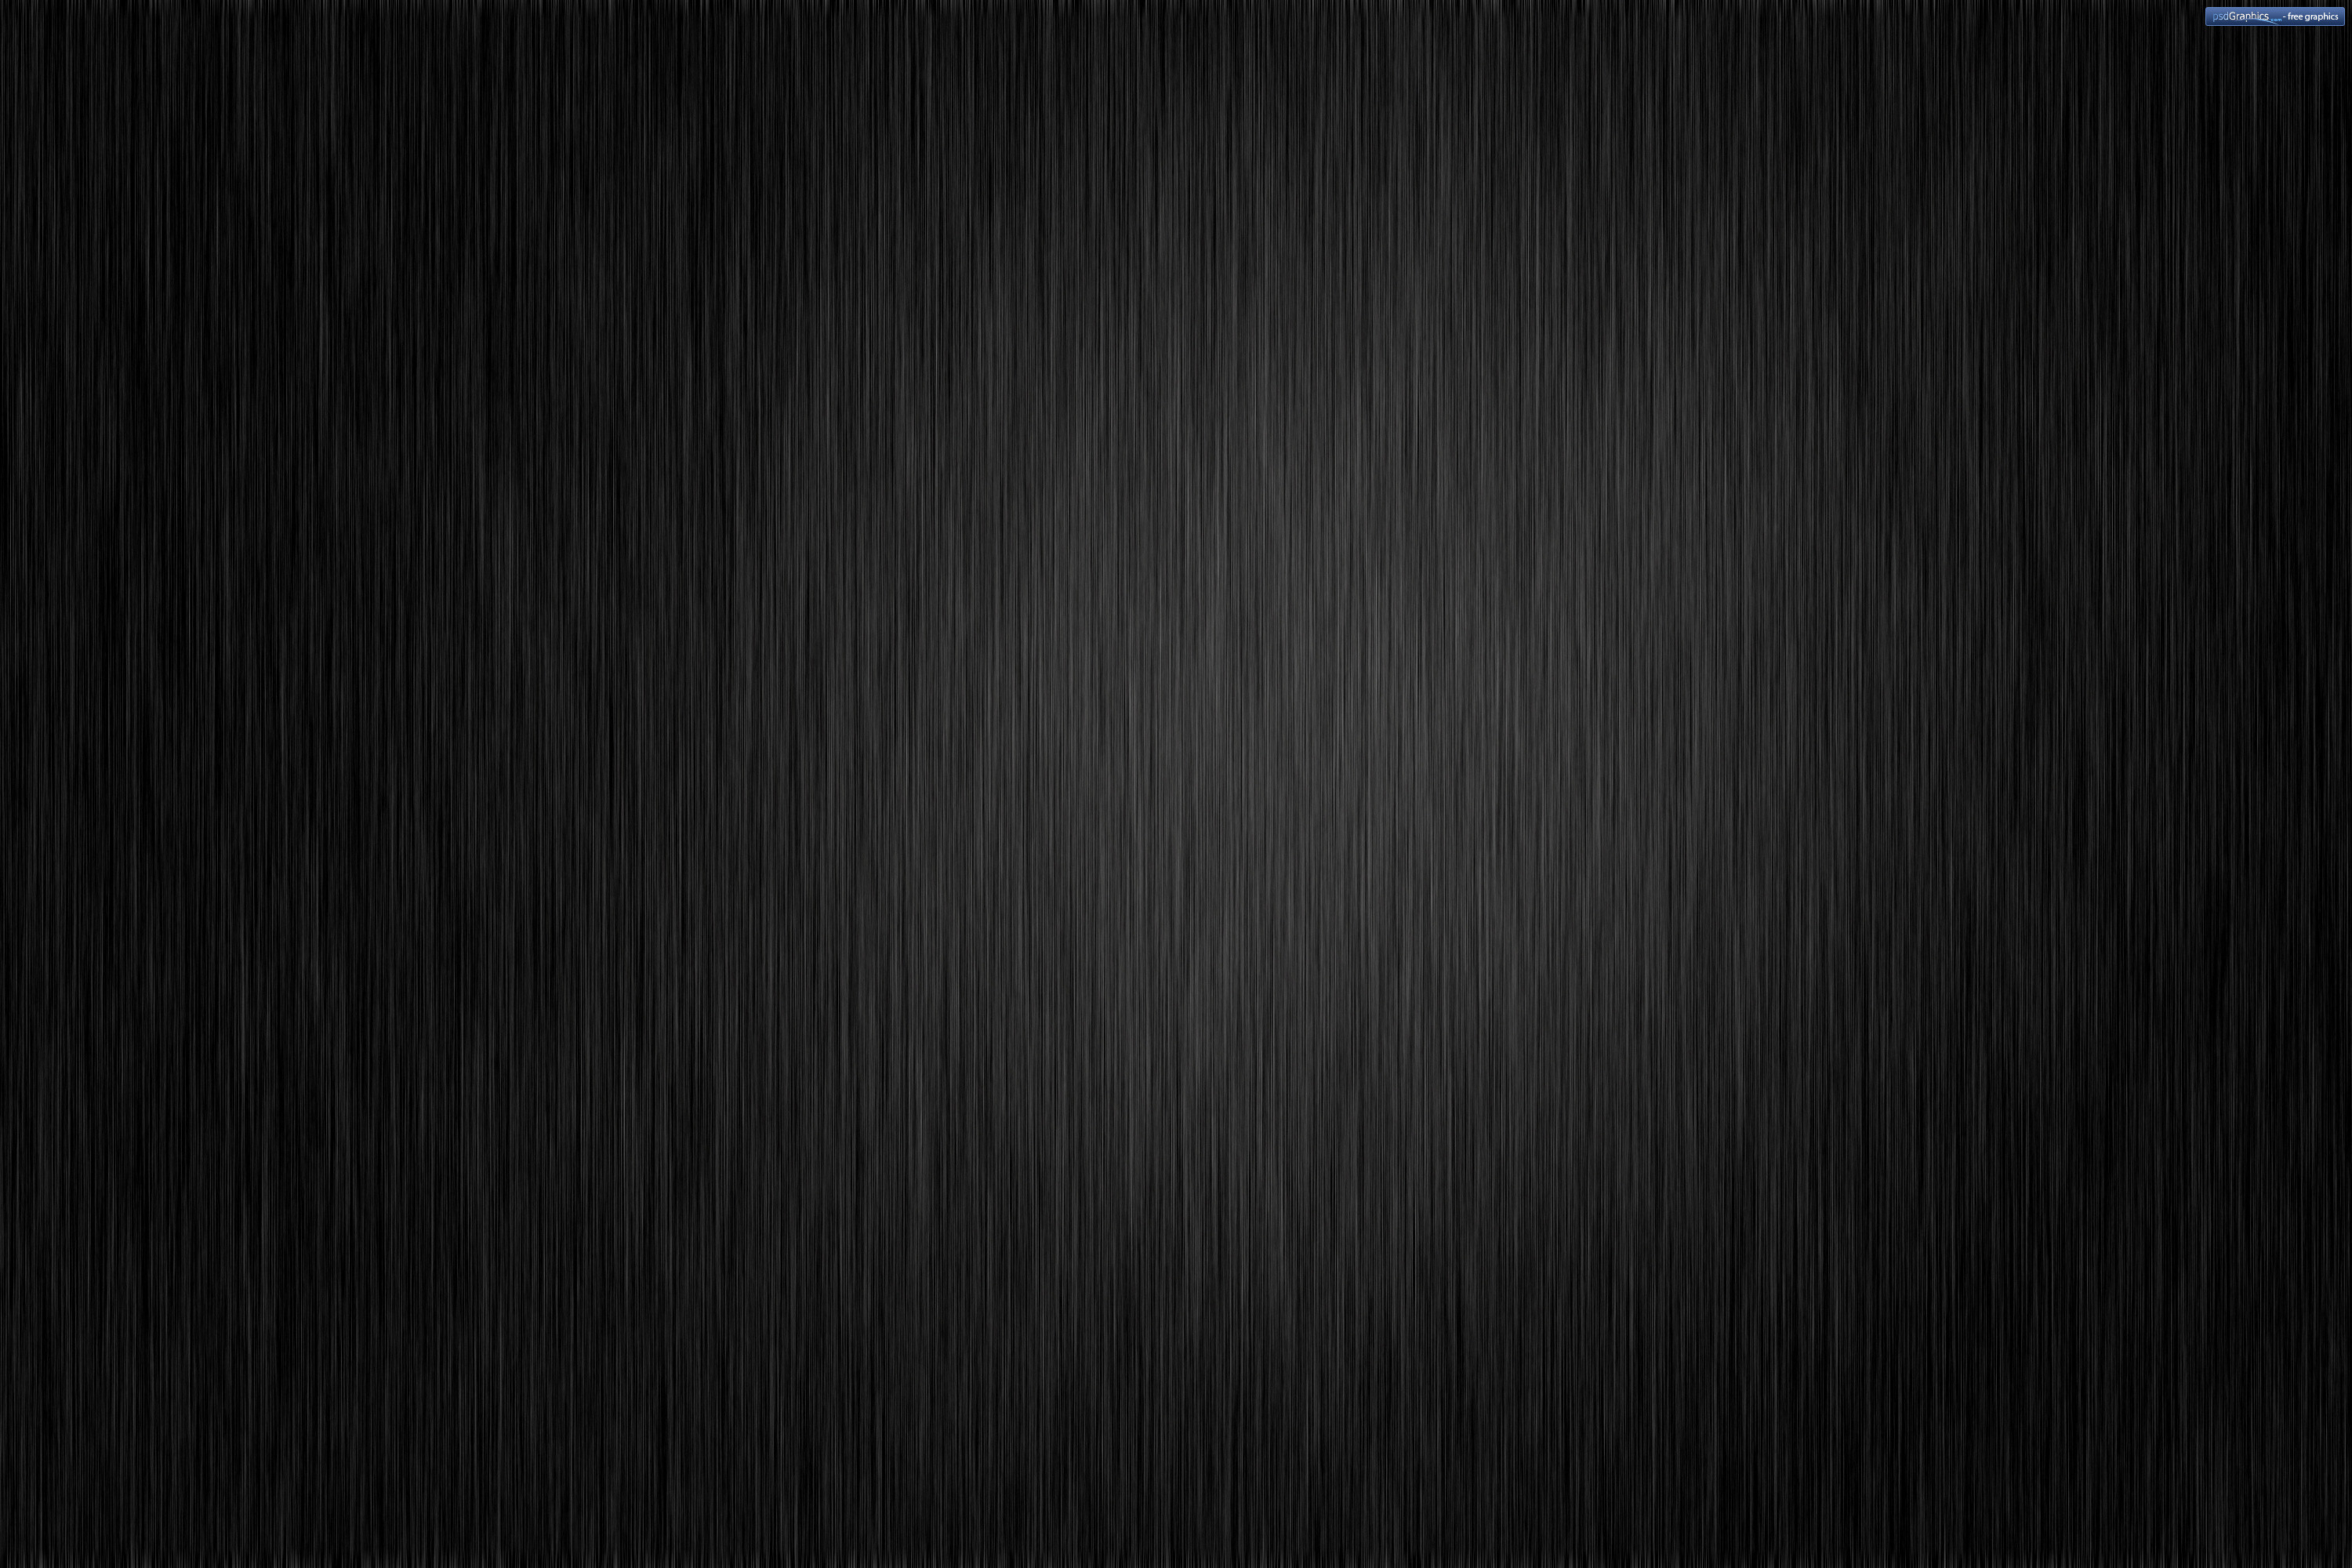 Black Texture Wallpapers Full HD wallpaper search